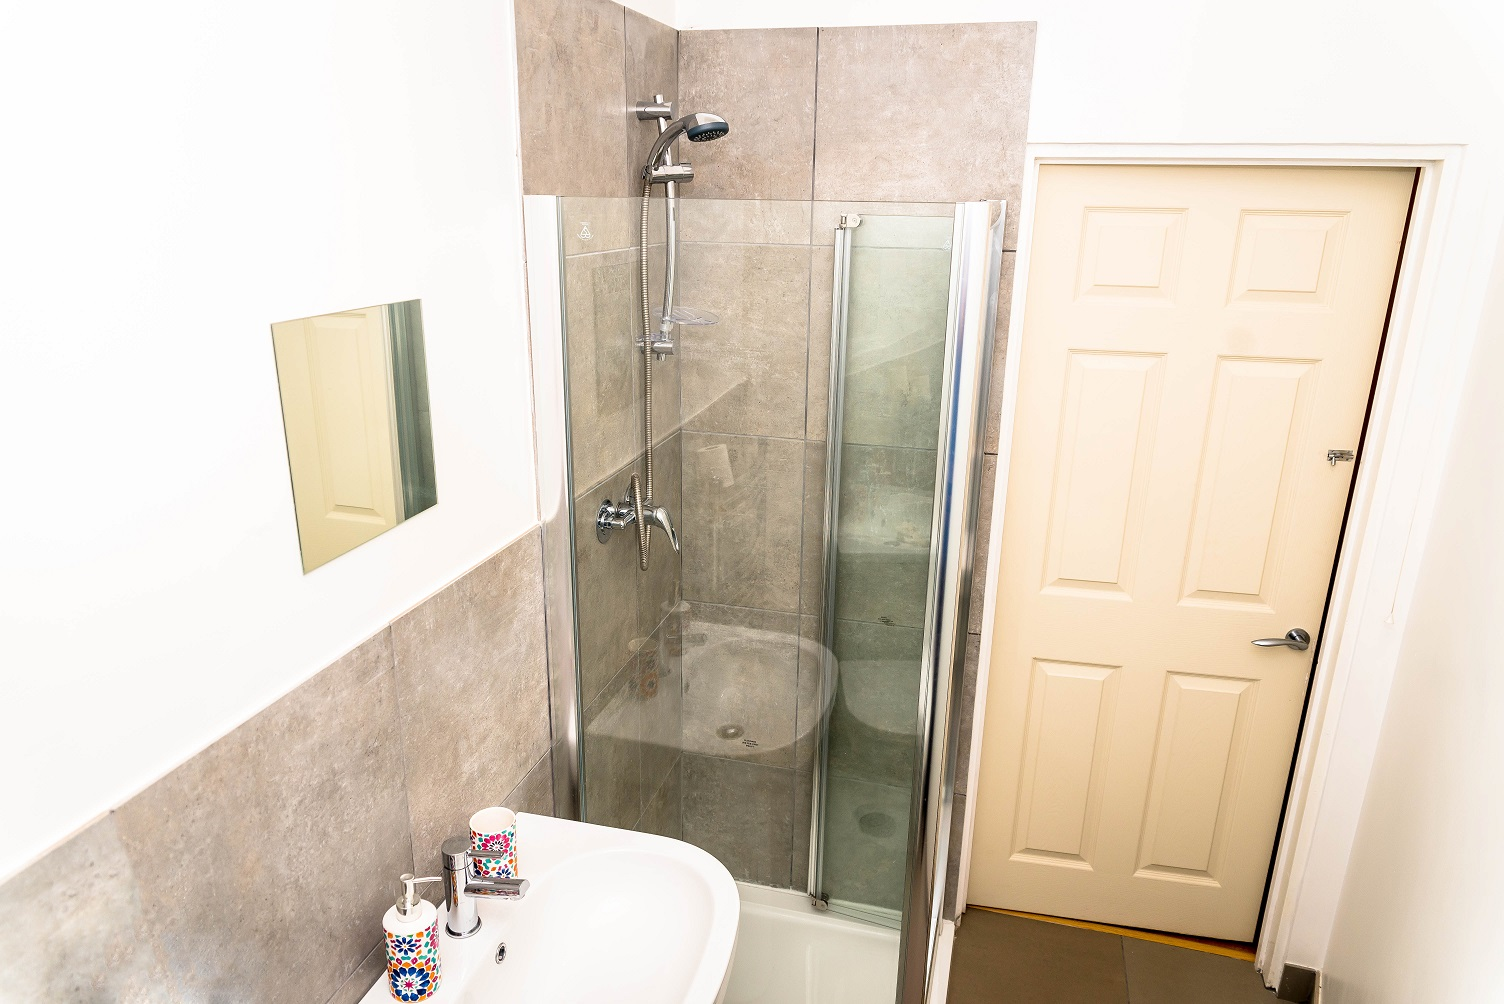 Bathroom at Radford Apartment, Basford, Nottingham - Citybase Apartments